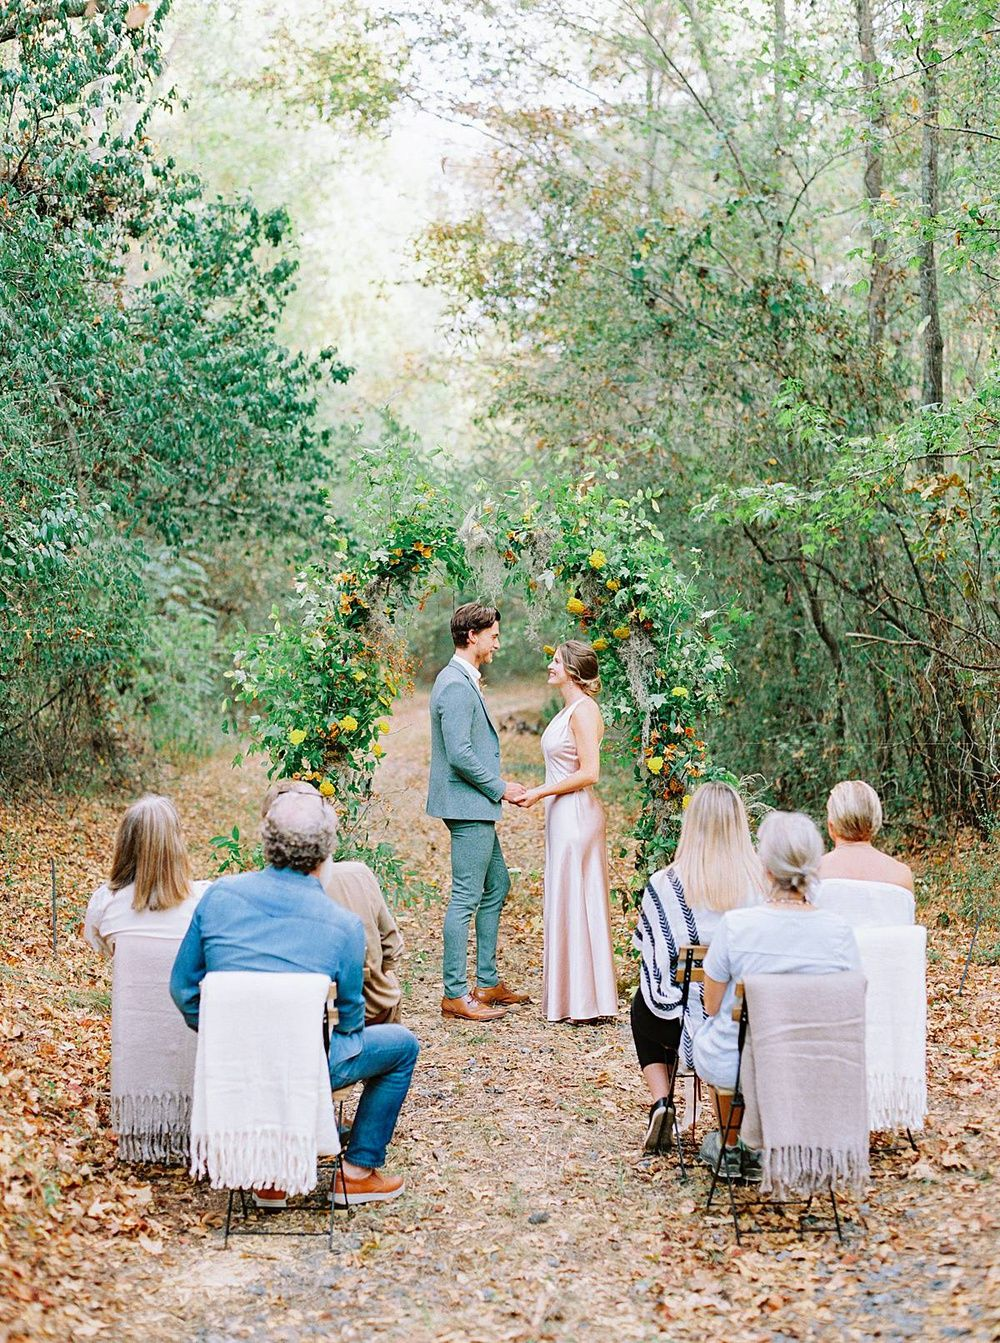 Intimate Wedding Ceremony Ideas In South Carolina In 2020 Wedding Inspiration Fall Small Outdoor Wedding Small Weddings Ceremony